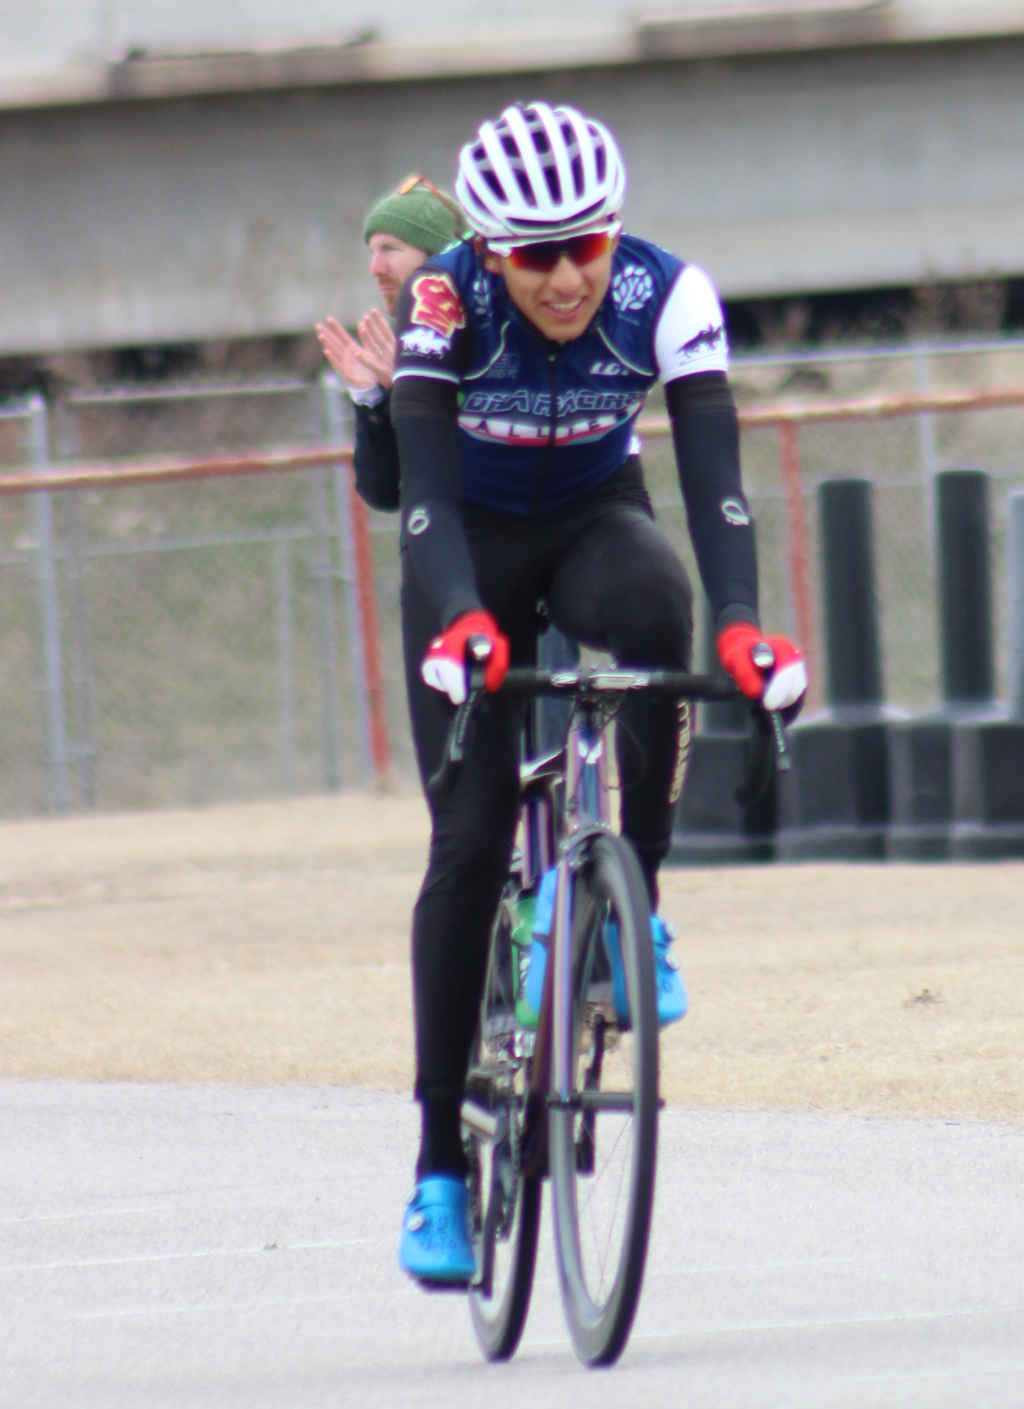 Pablo+Cruz+%28right%29+relaxes+after+winning+men%27s+%27A%27+criterium+while+cycling+director+Charlie+Zamastil+commends+team.+Photo+by+Sharome+Burton.+March+10.